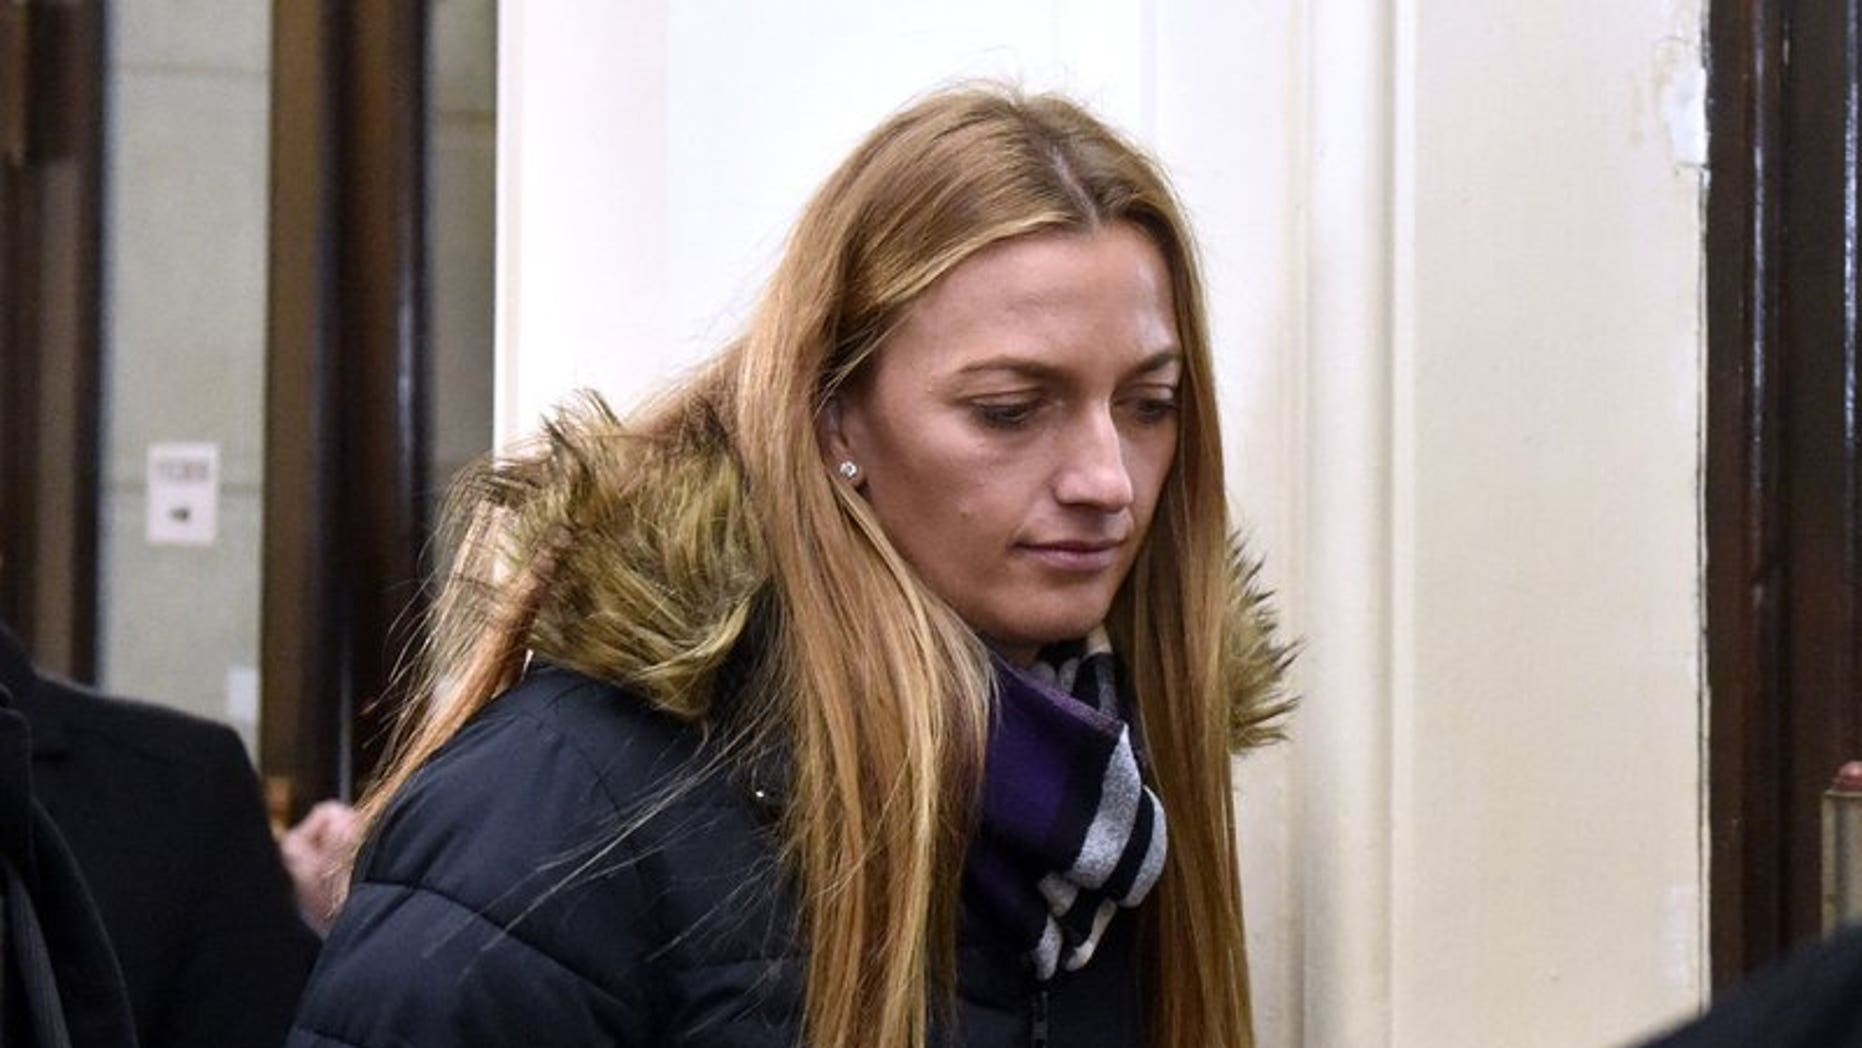 Czech tennis player Petra Kvitova leaves the Regional Court in Brno after giving a testimony during a trial with a man who is suspected of attacking her on Tuesday, Feb. 5, 2019.